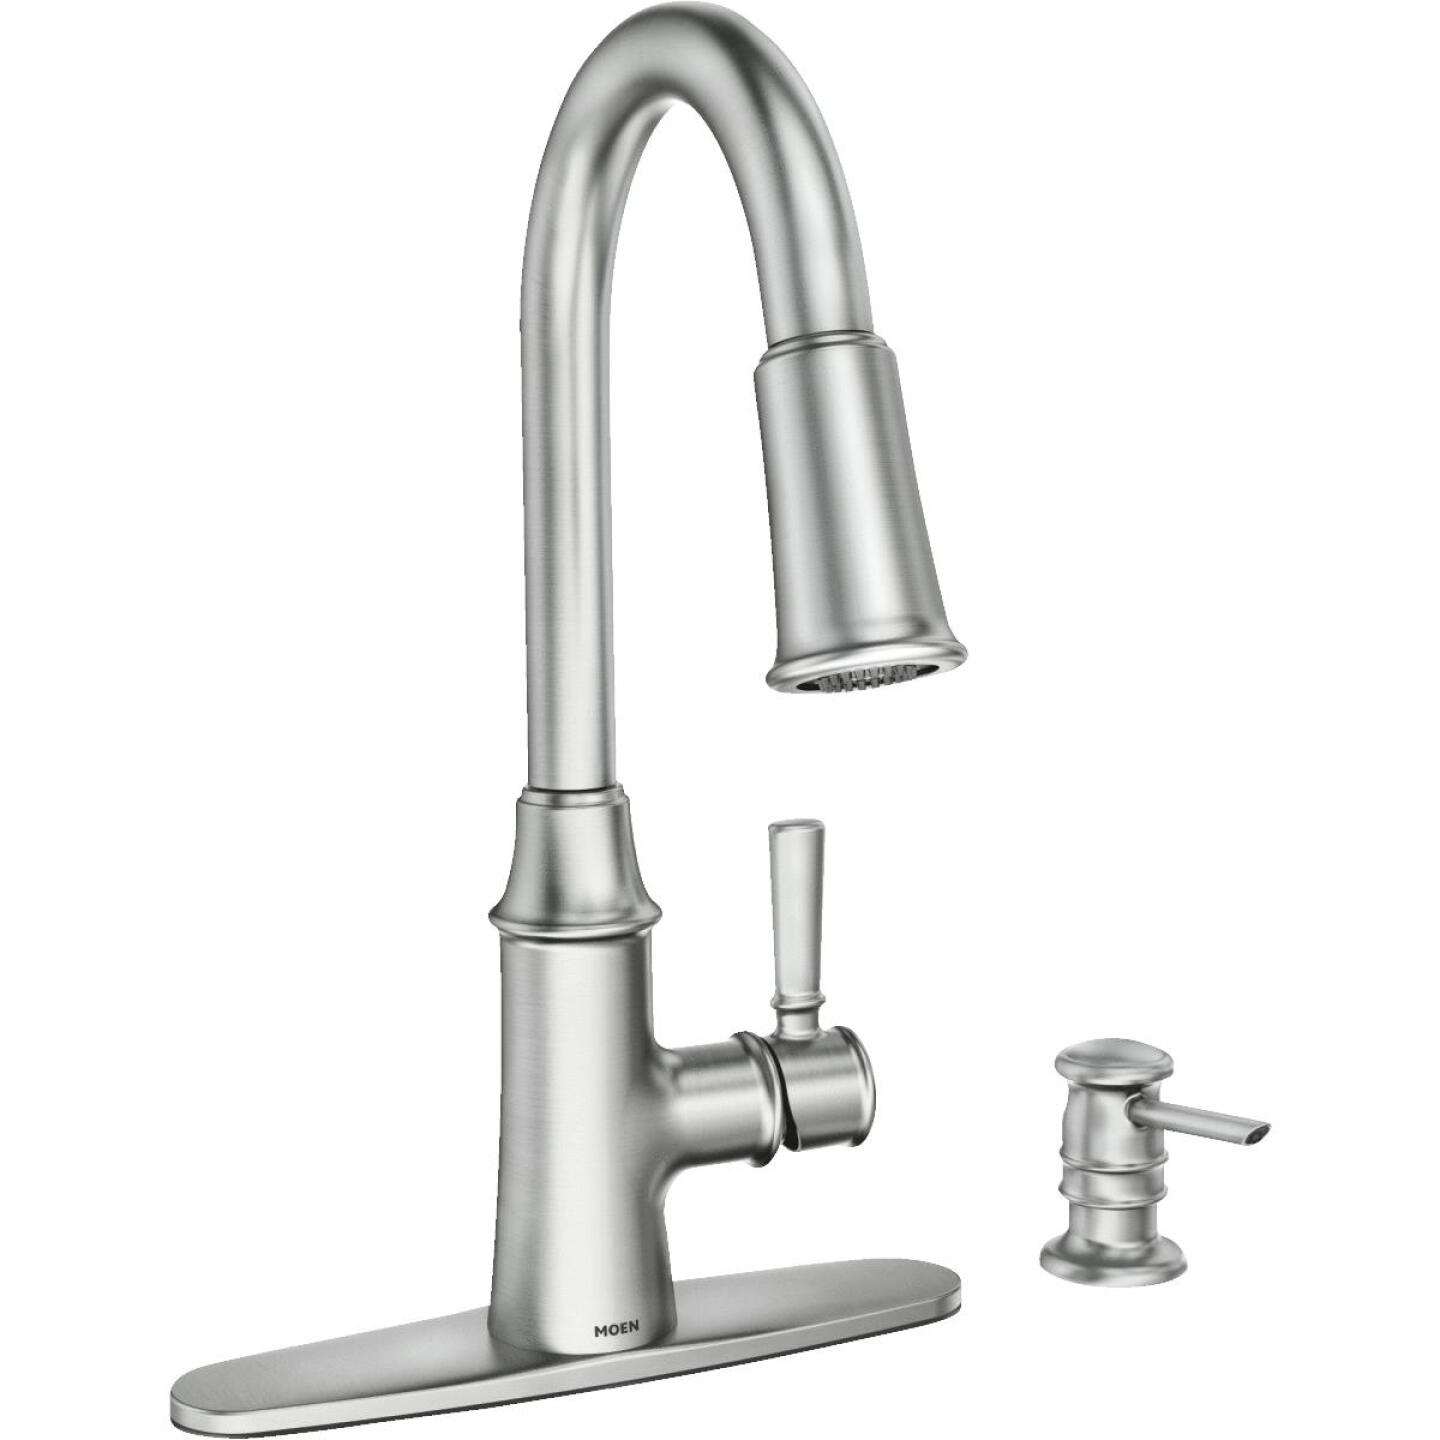 Moen Caris Single Handle Lever Kitchen Faucet with Soap Dispenser, Stainless Image 1